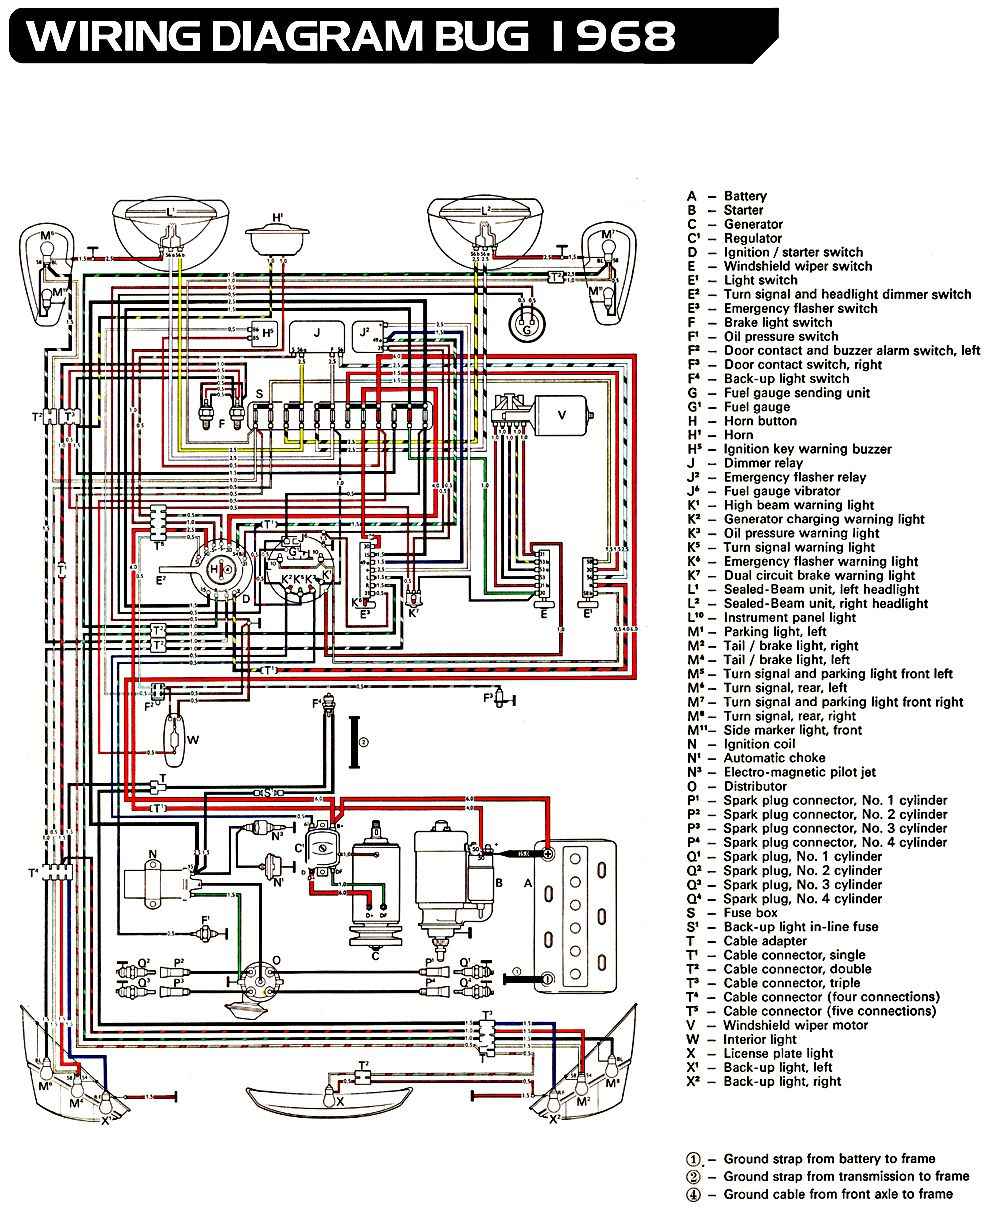 3a1908112d3826270ed5e3be362292bf vw bug ignition wiring diagram 73 vw wiring diagram free 1973 vw beetle wiring diagram at cos-gaming.co